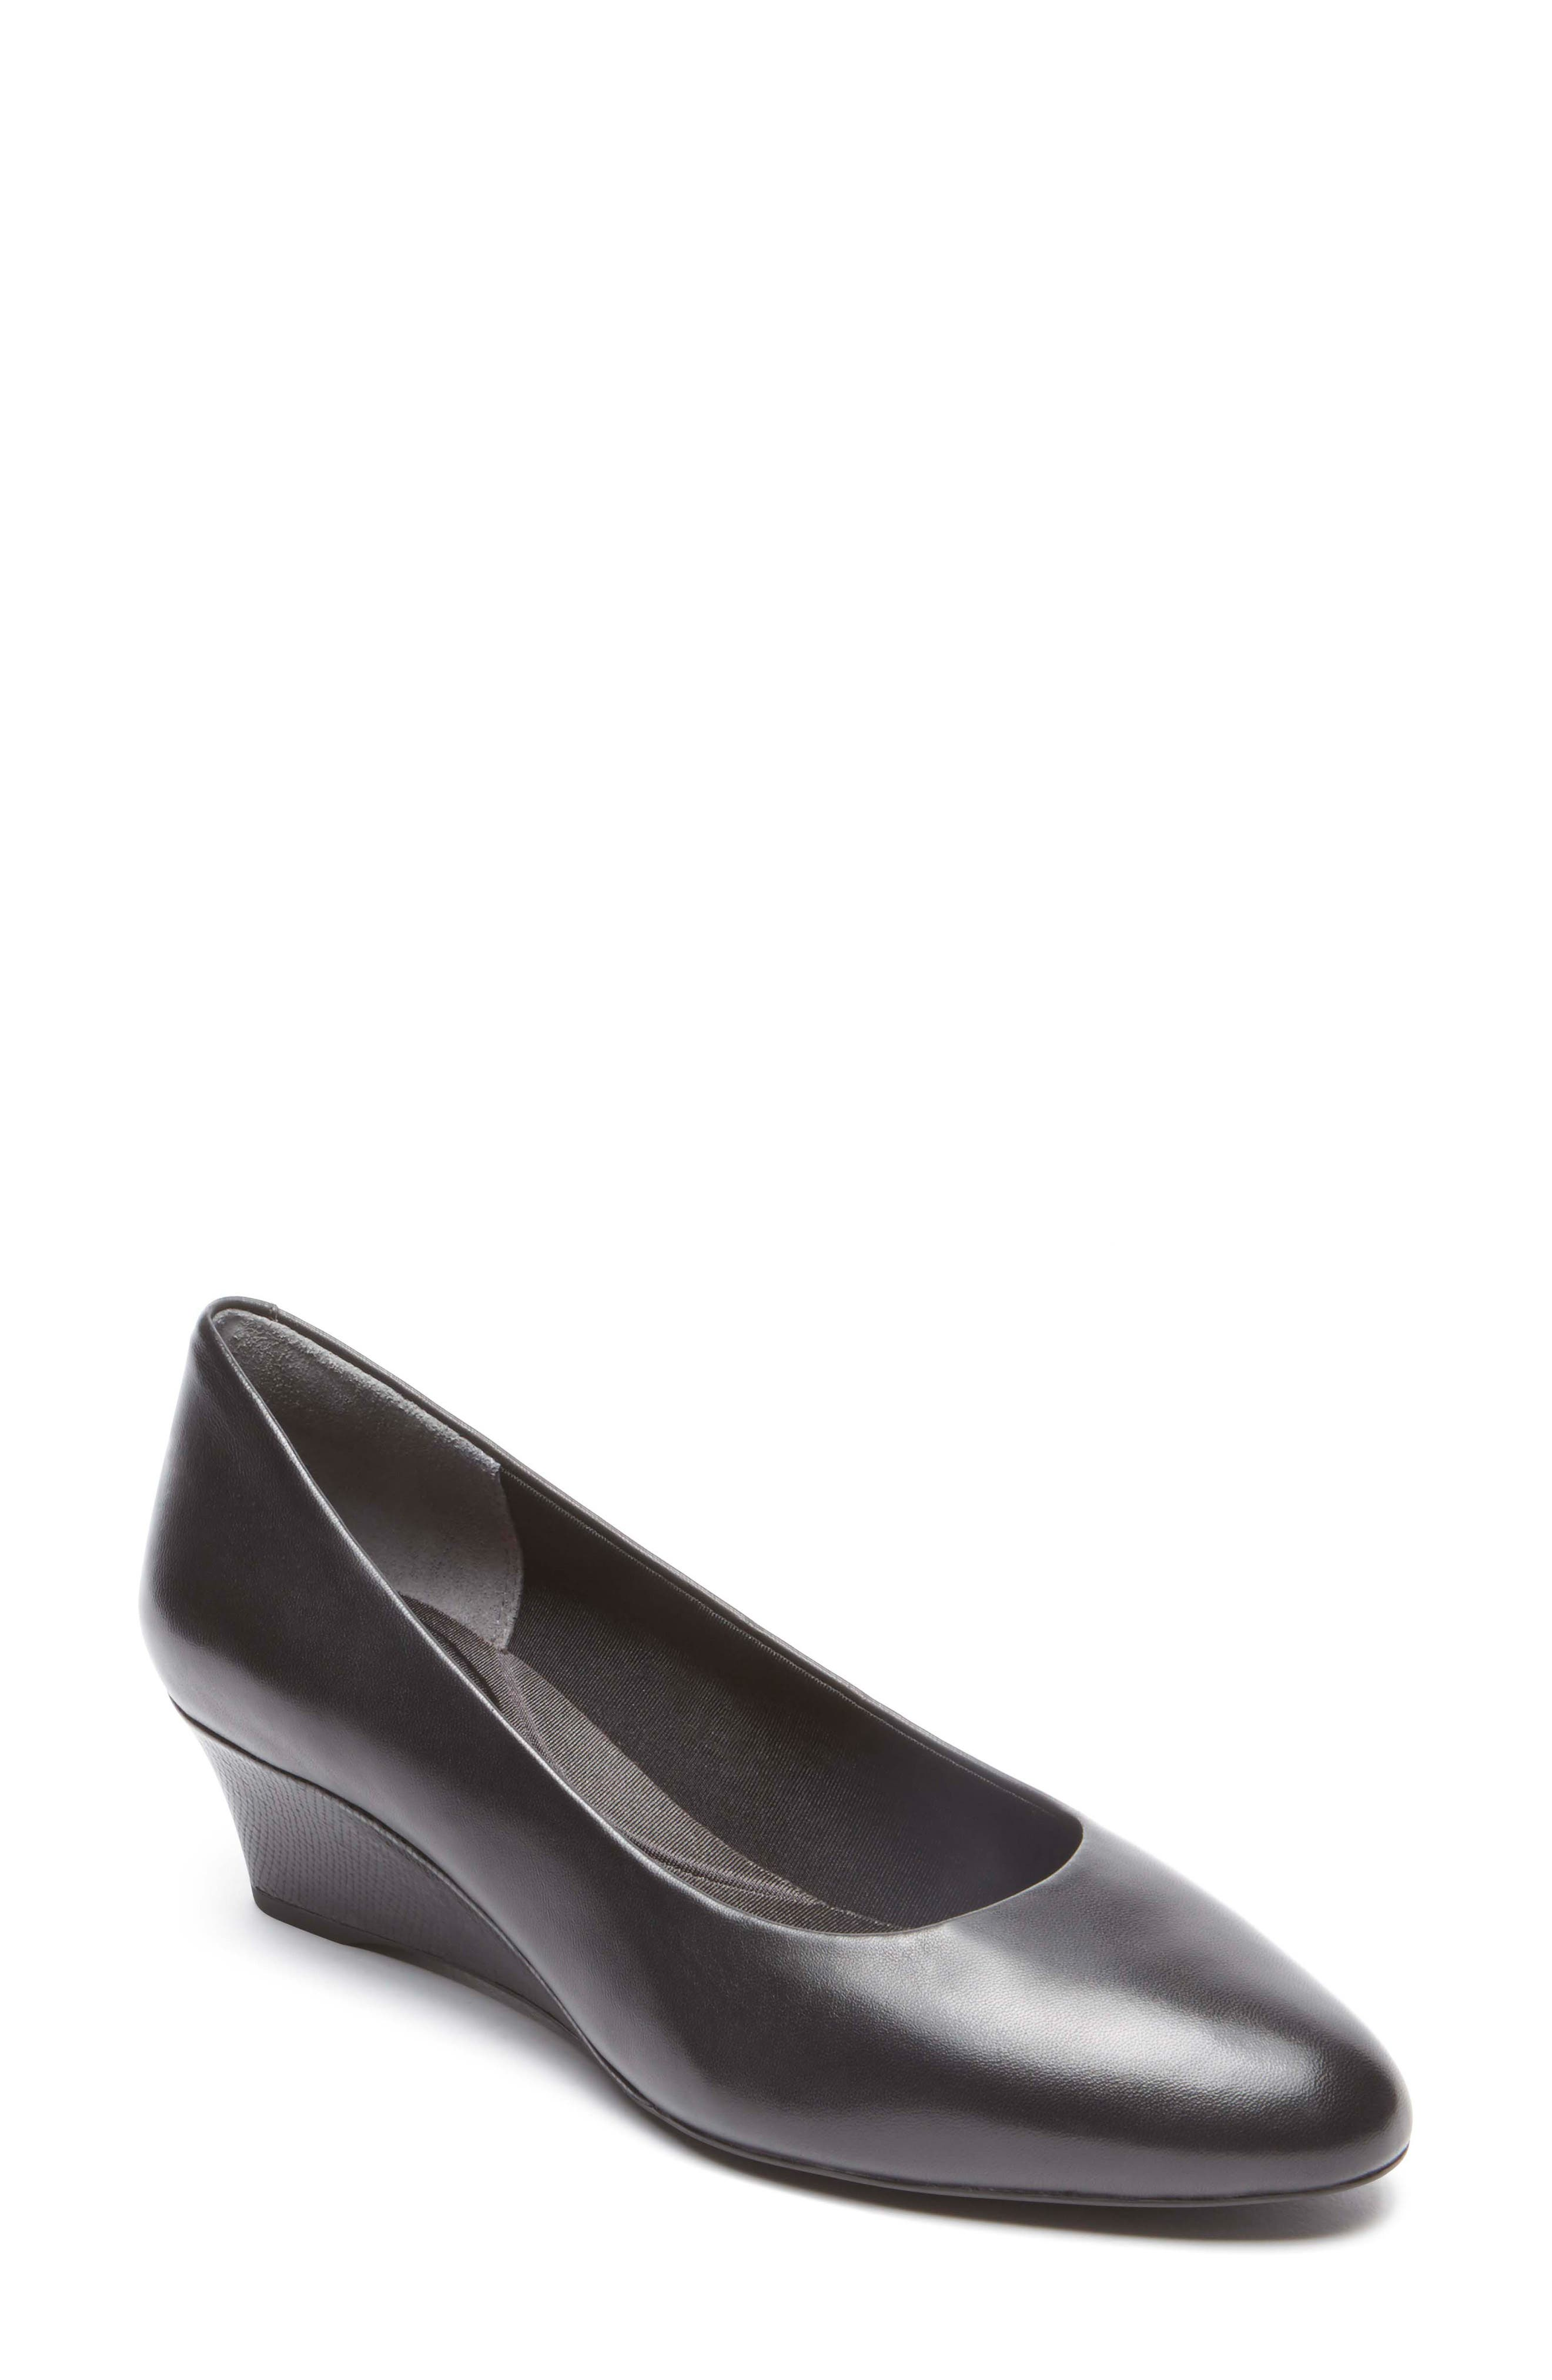 Total Motion Catrin Wedge Pump,                             Main thumbnail 1, color,                             BLACK LEATHER